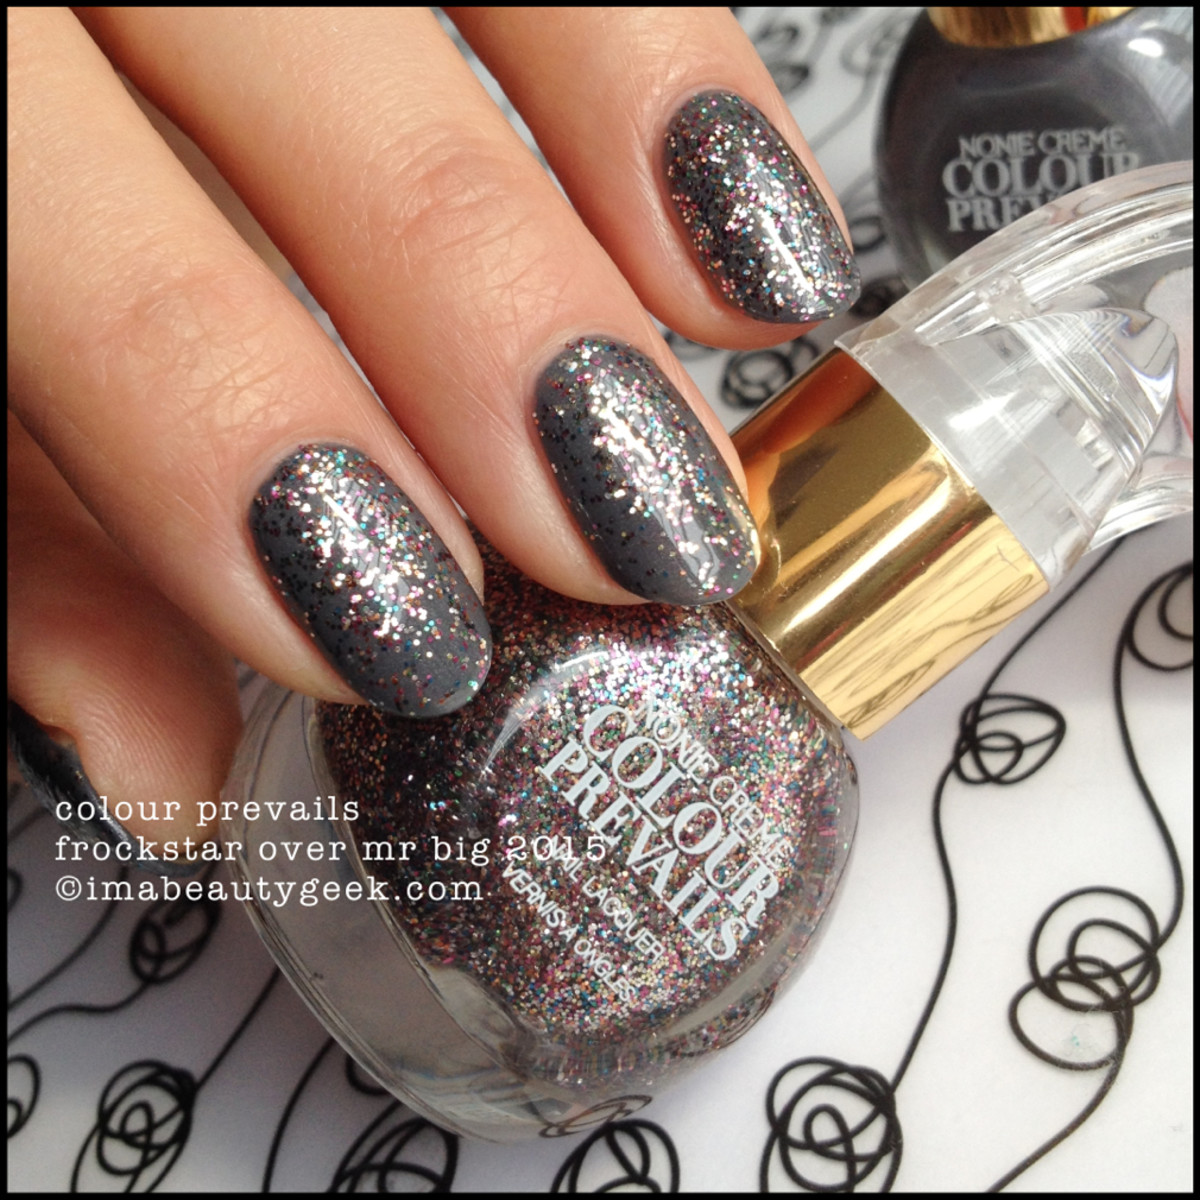 Colour Prevails Frockstar over Mr Big Nail Lacquer by Nonie Creme